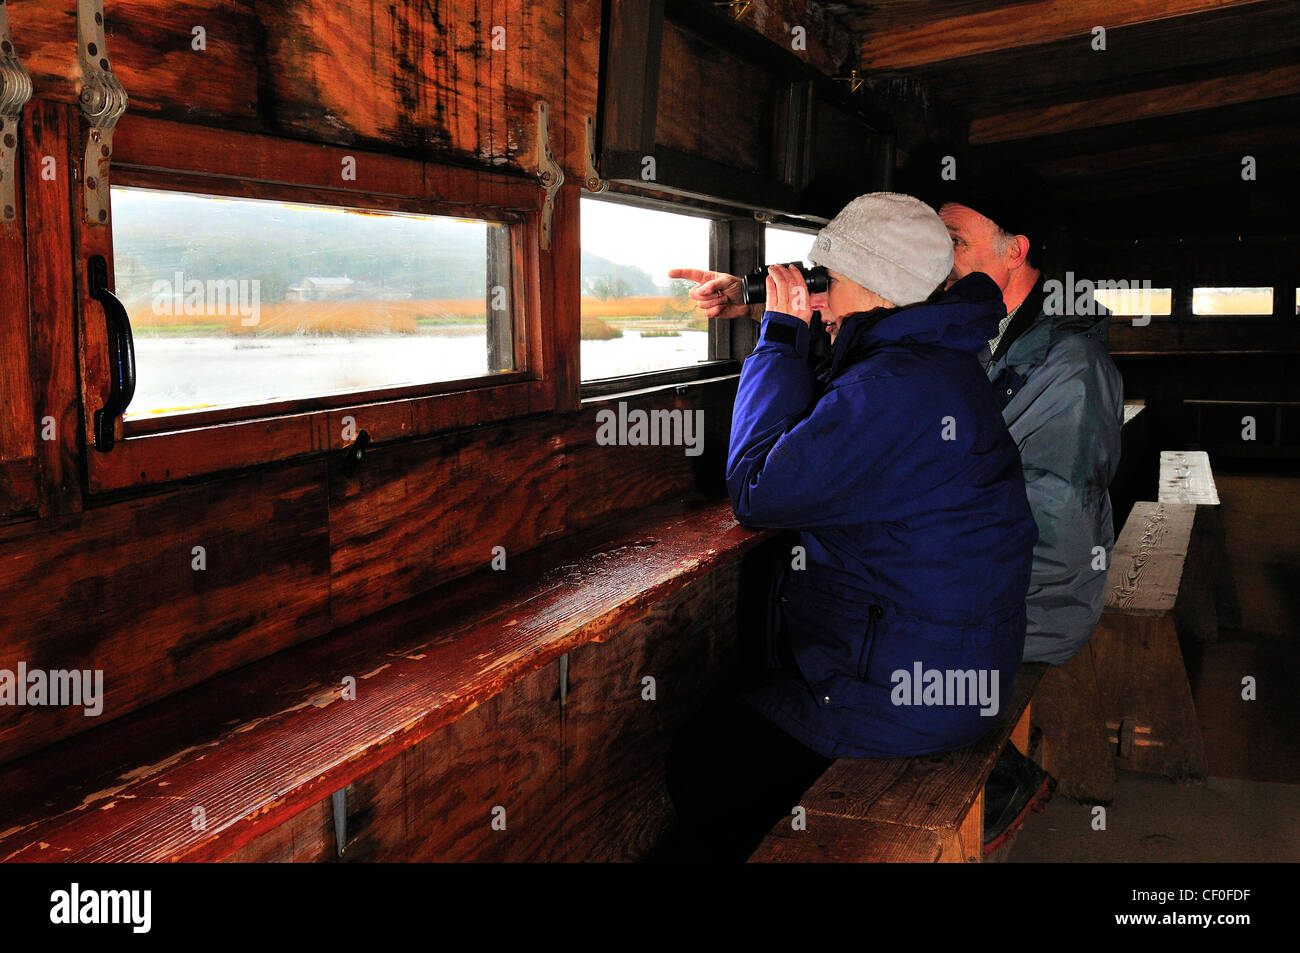 Two bird watchers  looking out from a public hide at Leighton Moss Leighton Moss RSPB reserve Leighton  Moss - Stock Image